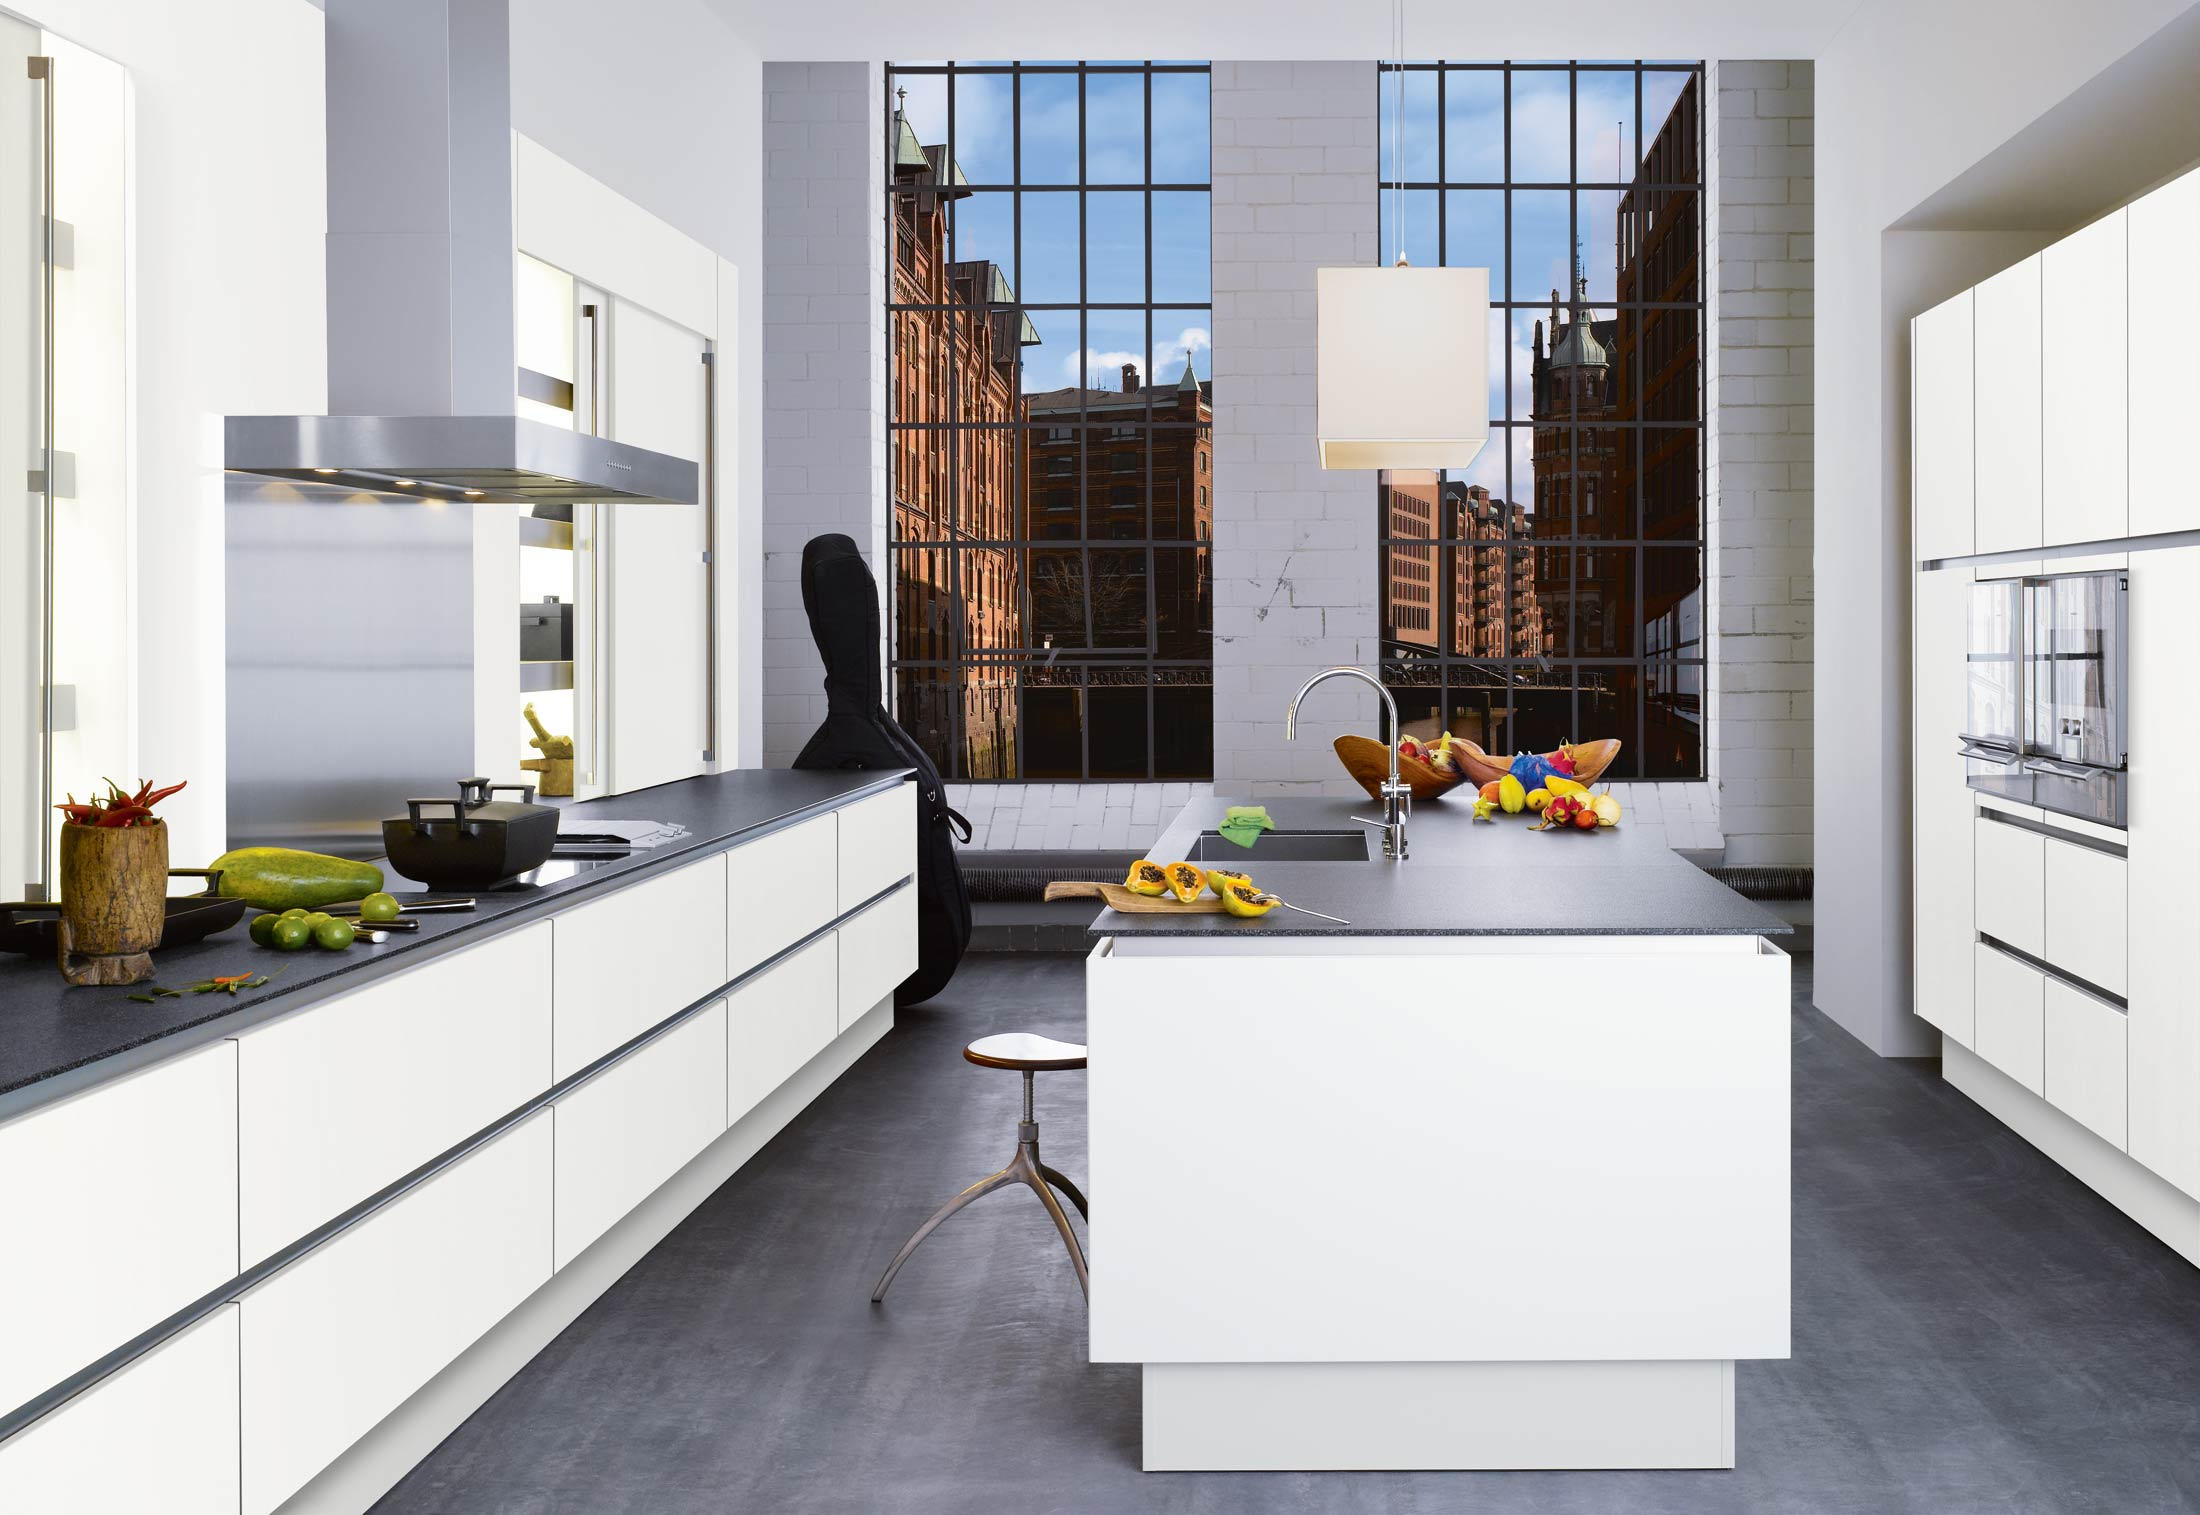 siematic kchen preise islands are a great addition to your kitchen providing extra work space. Black Bedroom Furniture Sets. Home Design Ideas